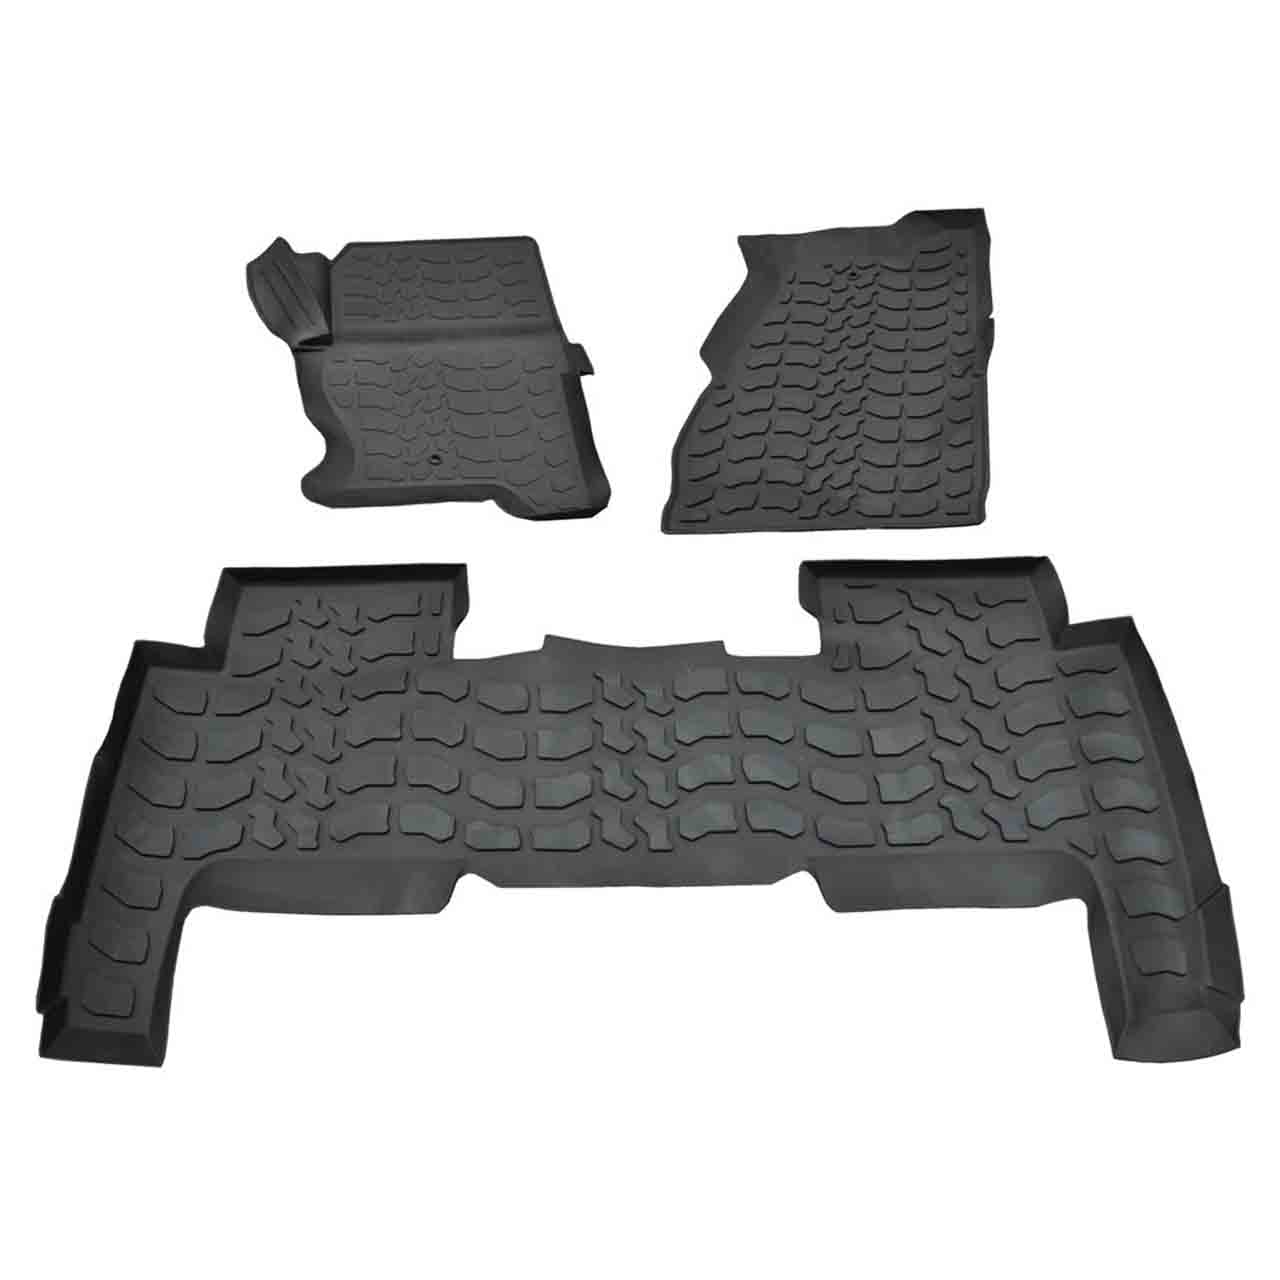 Set Tappetini Gomma Range Rover Sport Lhd Anteriore-Posteriore Range Rover Sport Land Rover GR2-07577